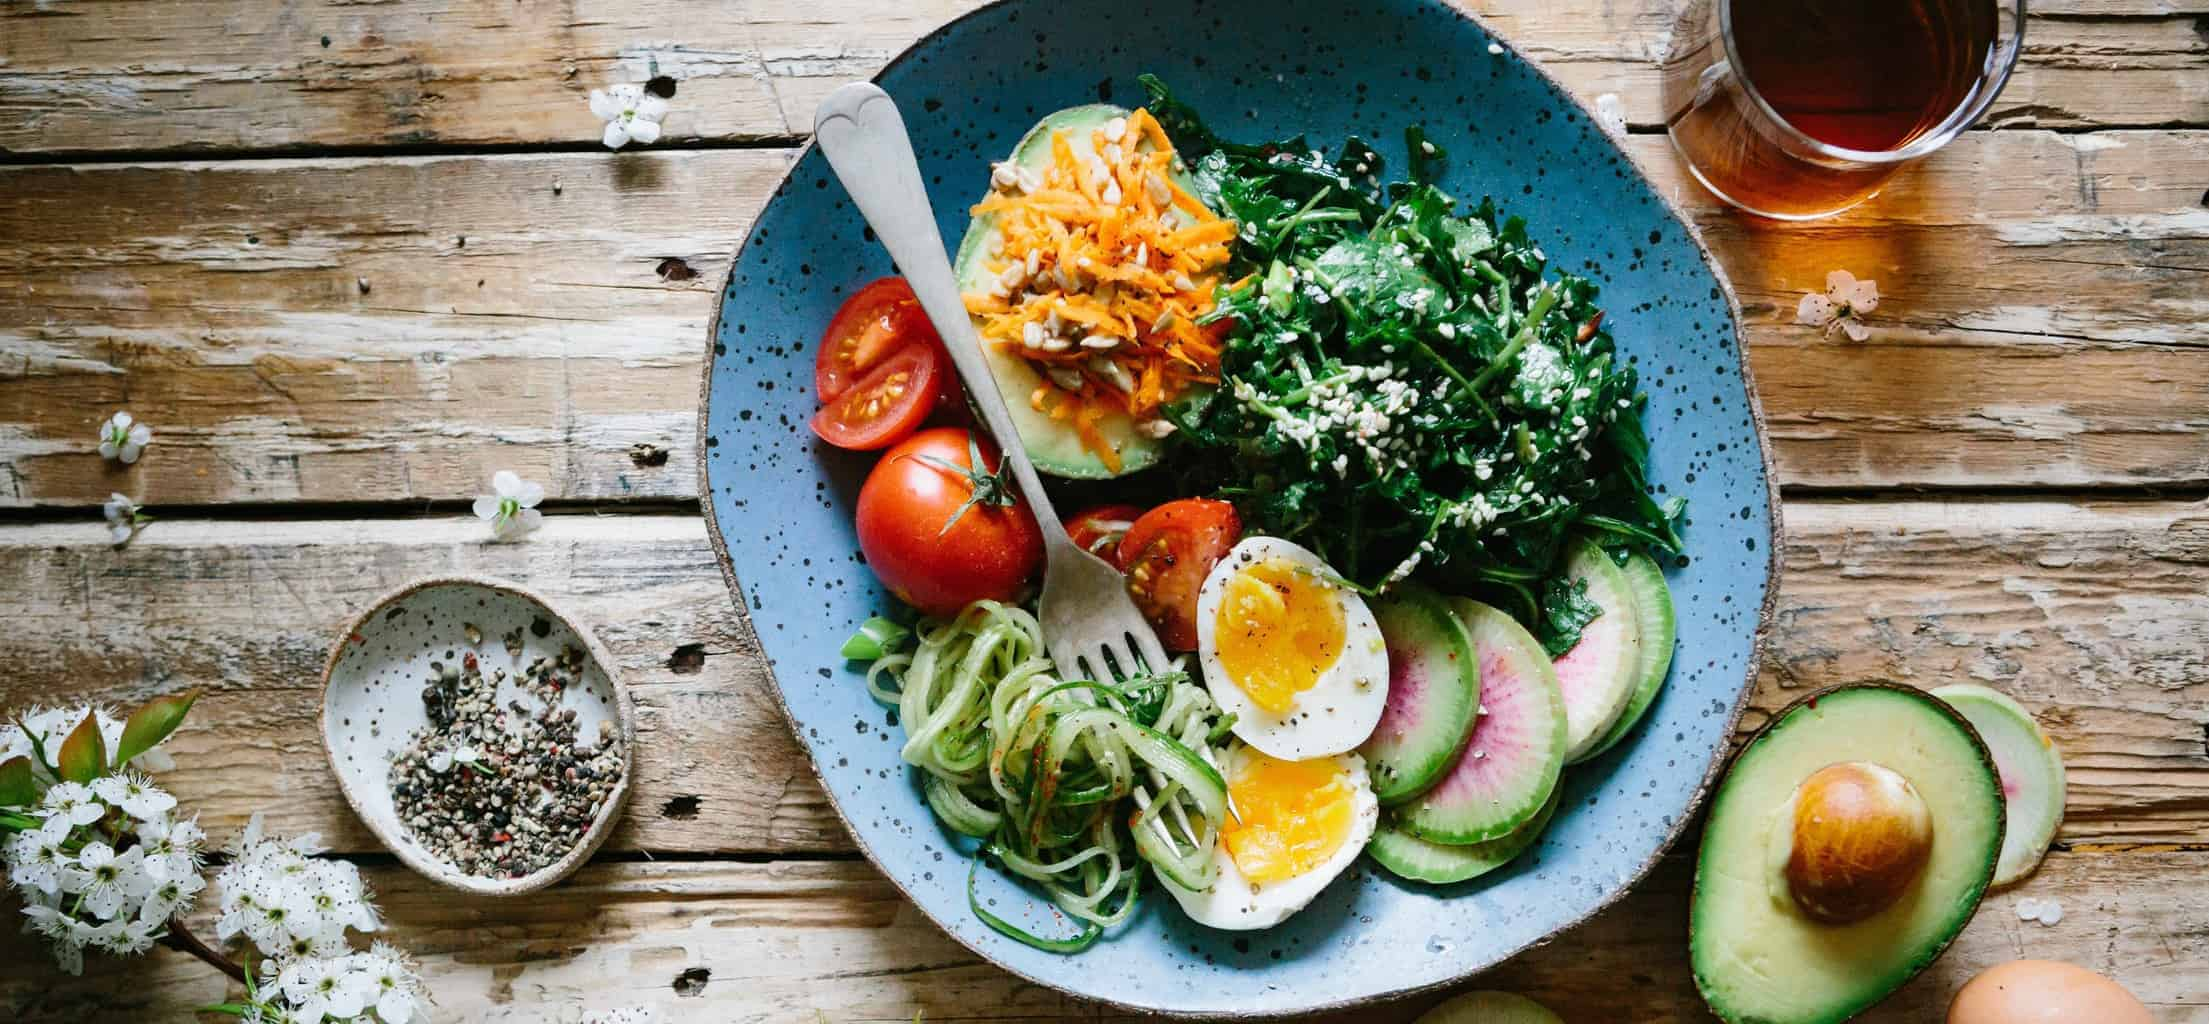 Nutrition Coaching - A plate of healthy delicious food.